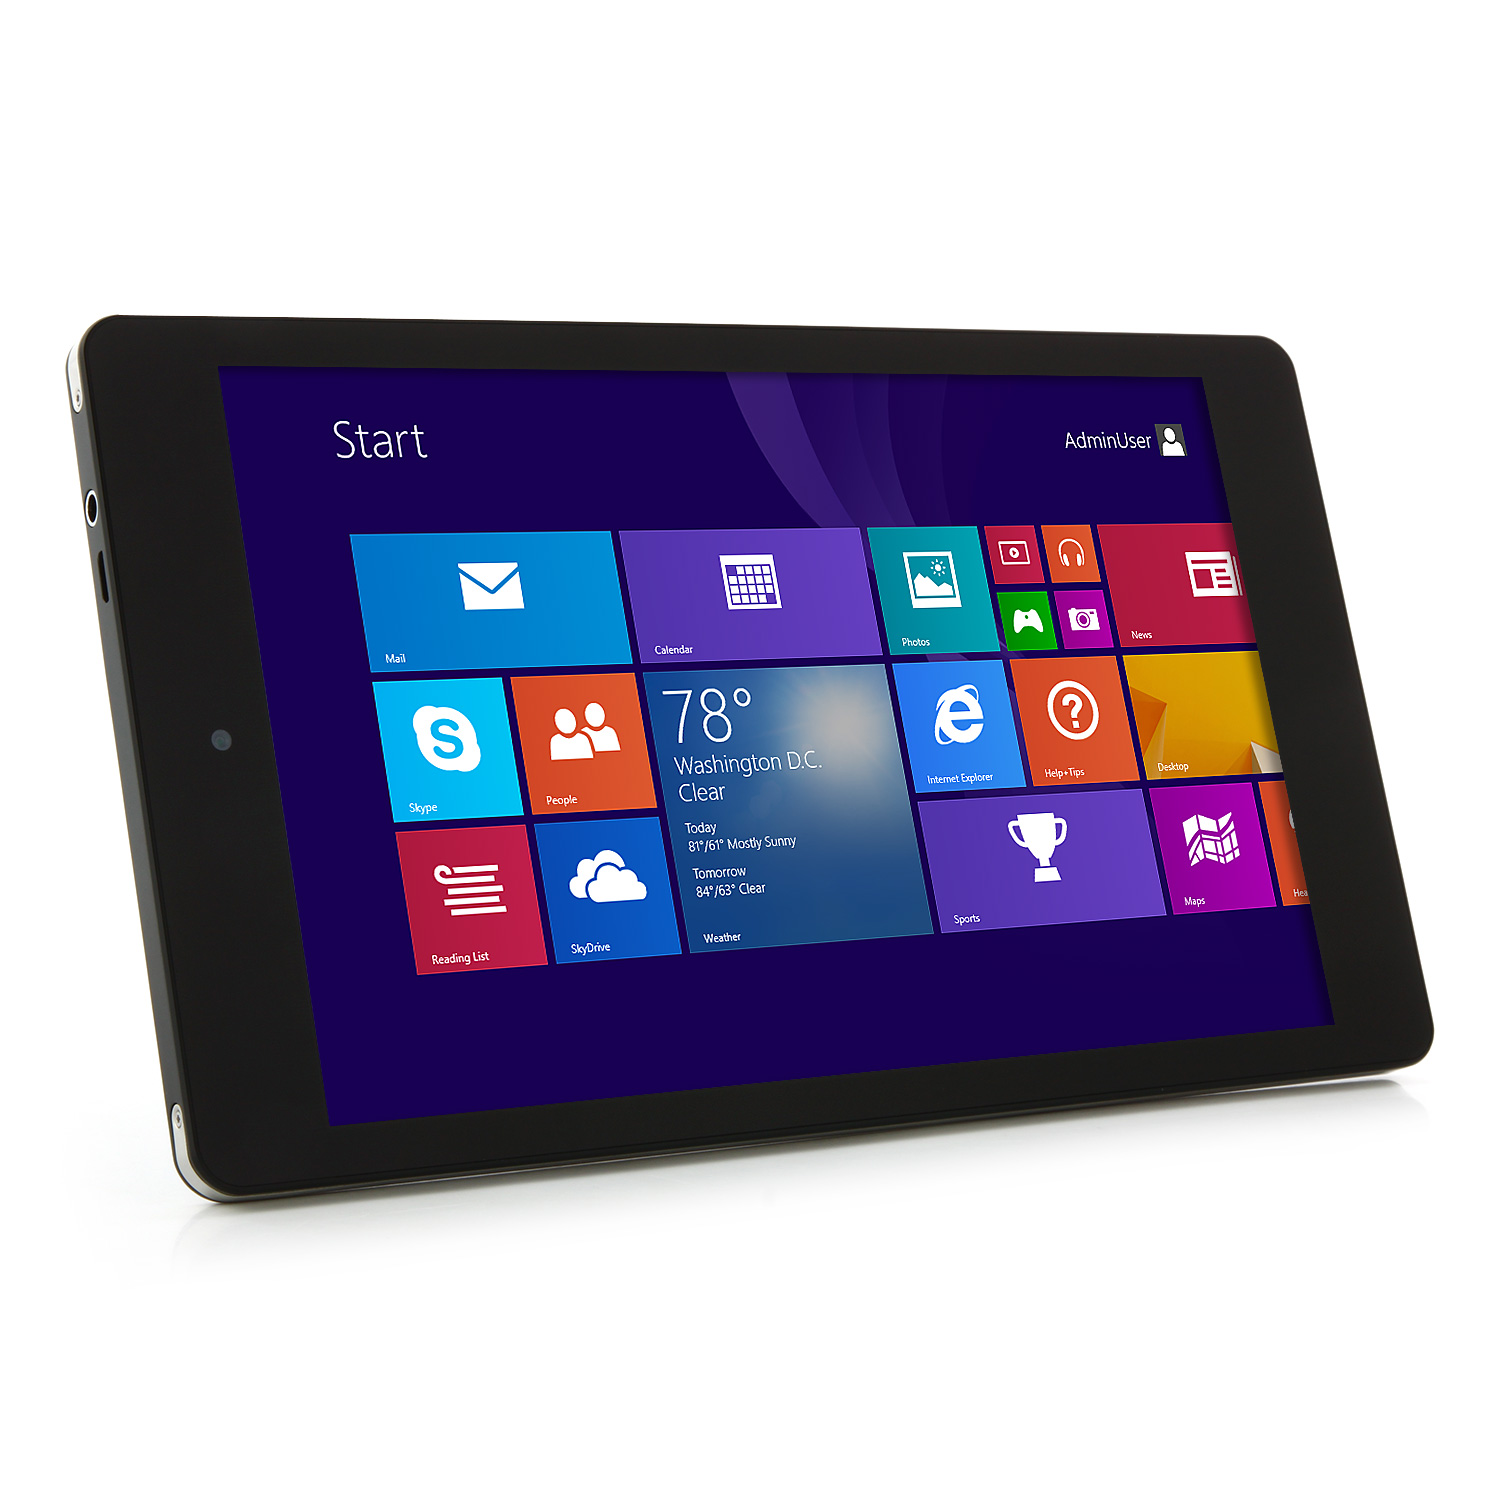 CHUWI VX8 3G Tablet PC Intel 3735F Quad Core 8.0 Inch Windows 8.1 IPS Screen 16GB Black